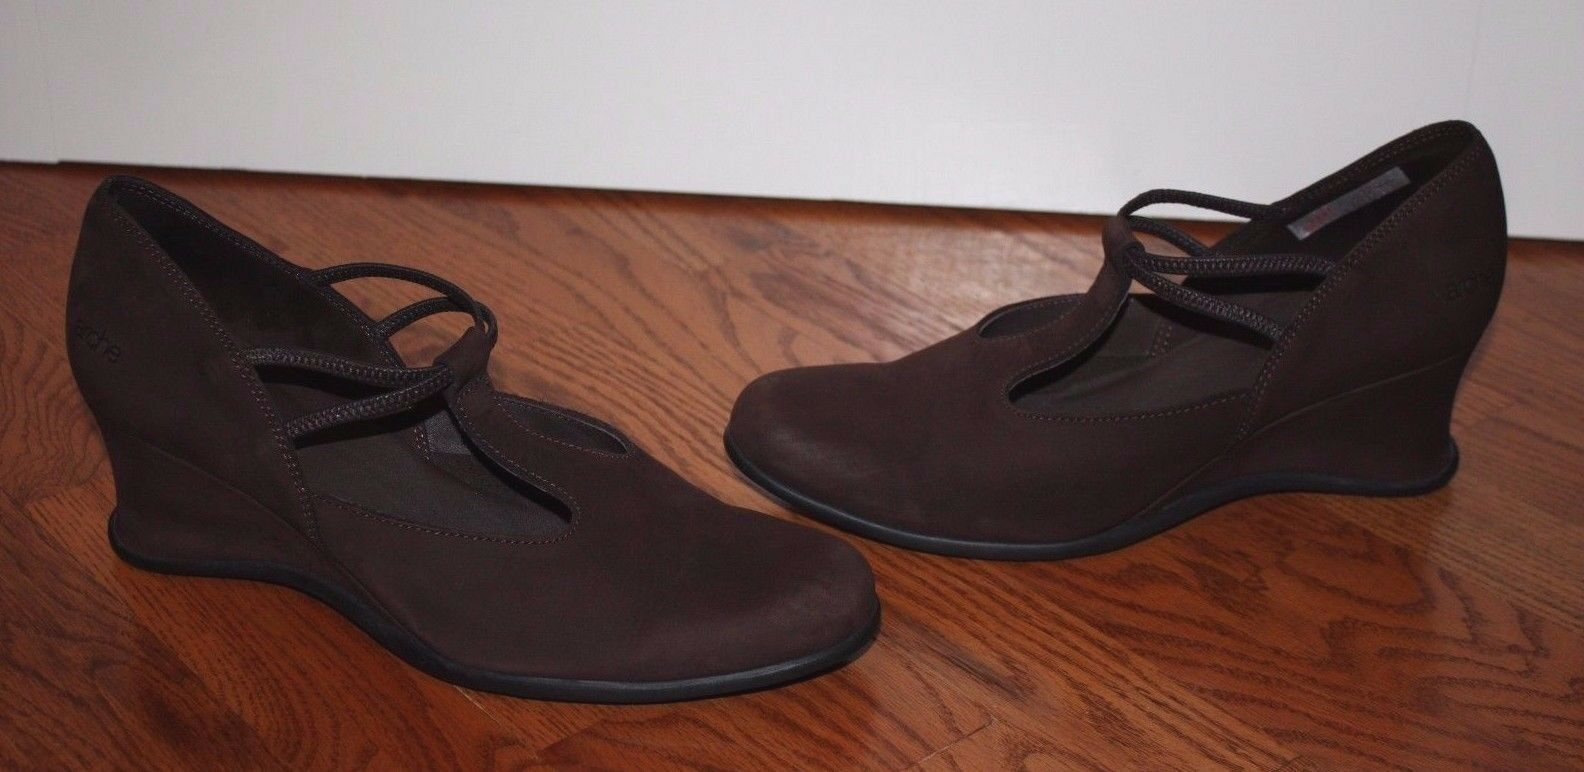 Donna Arche Brown Suede Pelle Wedges Shoes Size 40